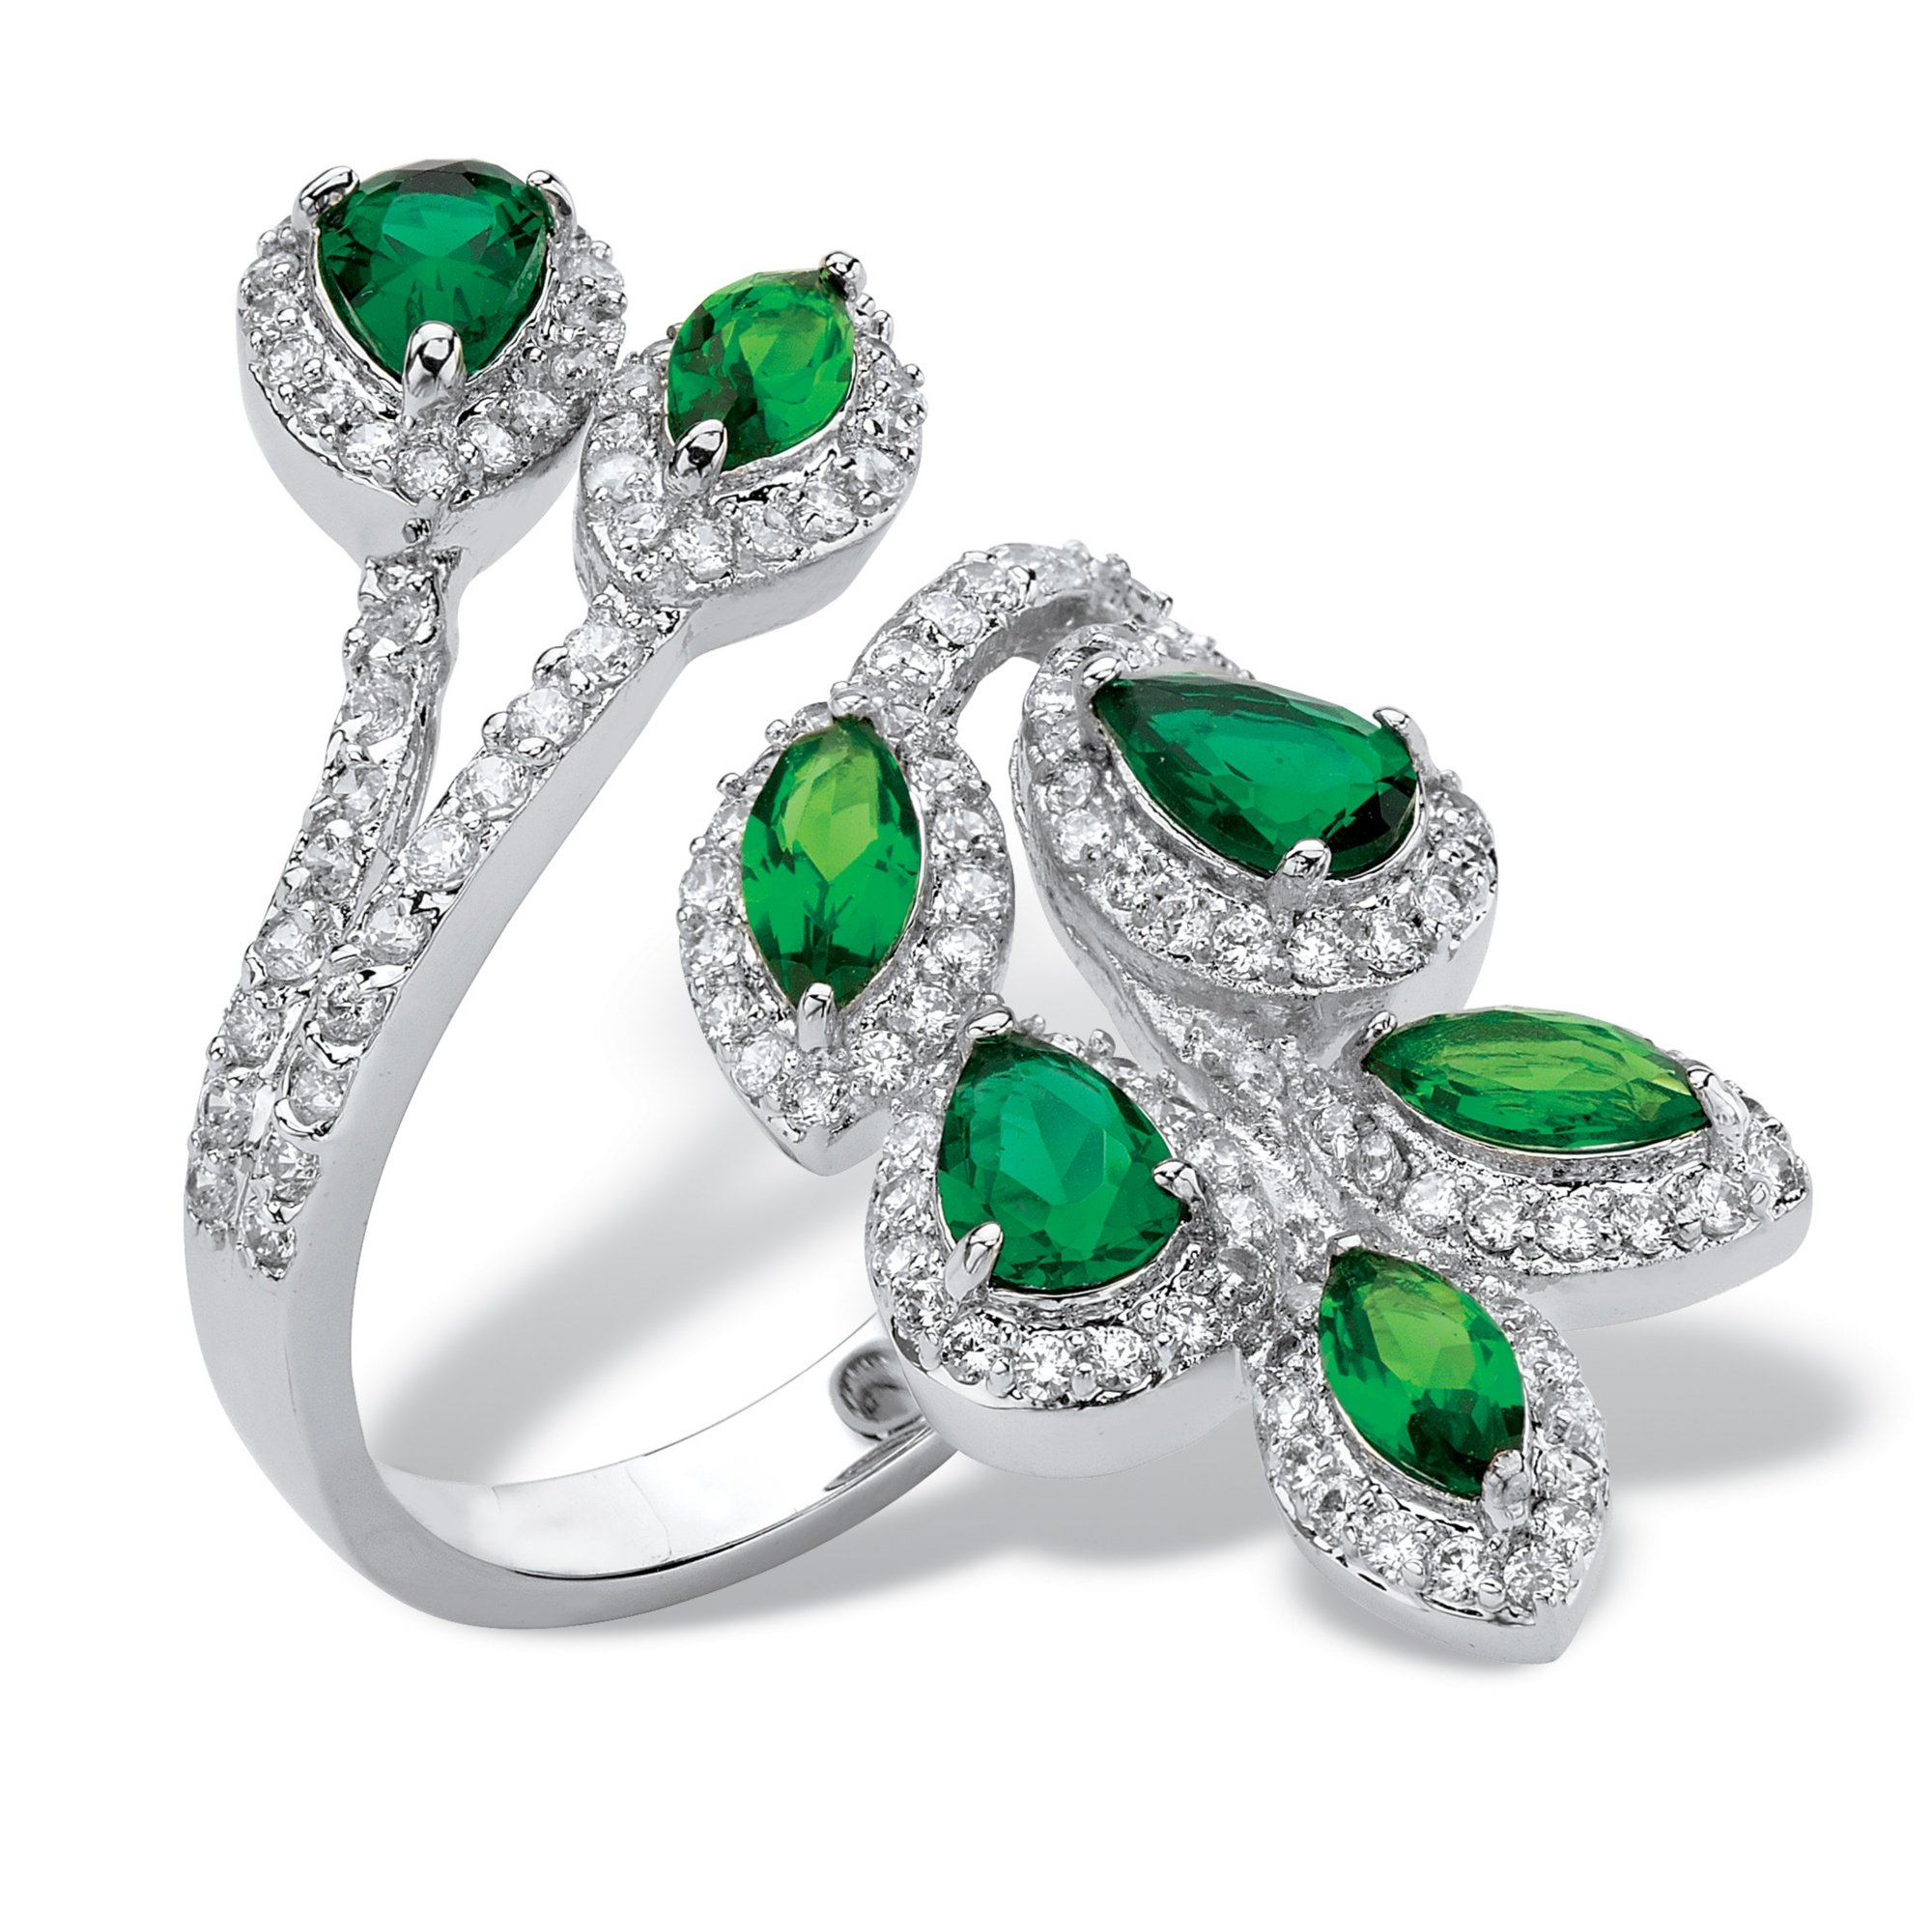 Palm Beach Jewelry Platinum-plated Marquise and Pear Cut Halo Leaf Ring, Green Glass and Cubic Zirconia Size 10